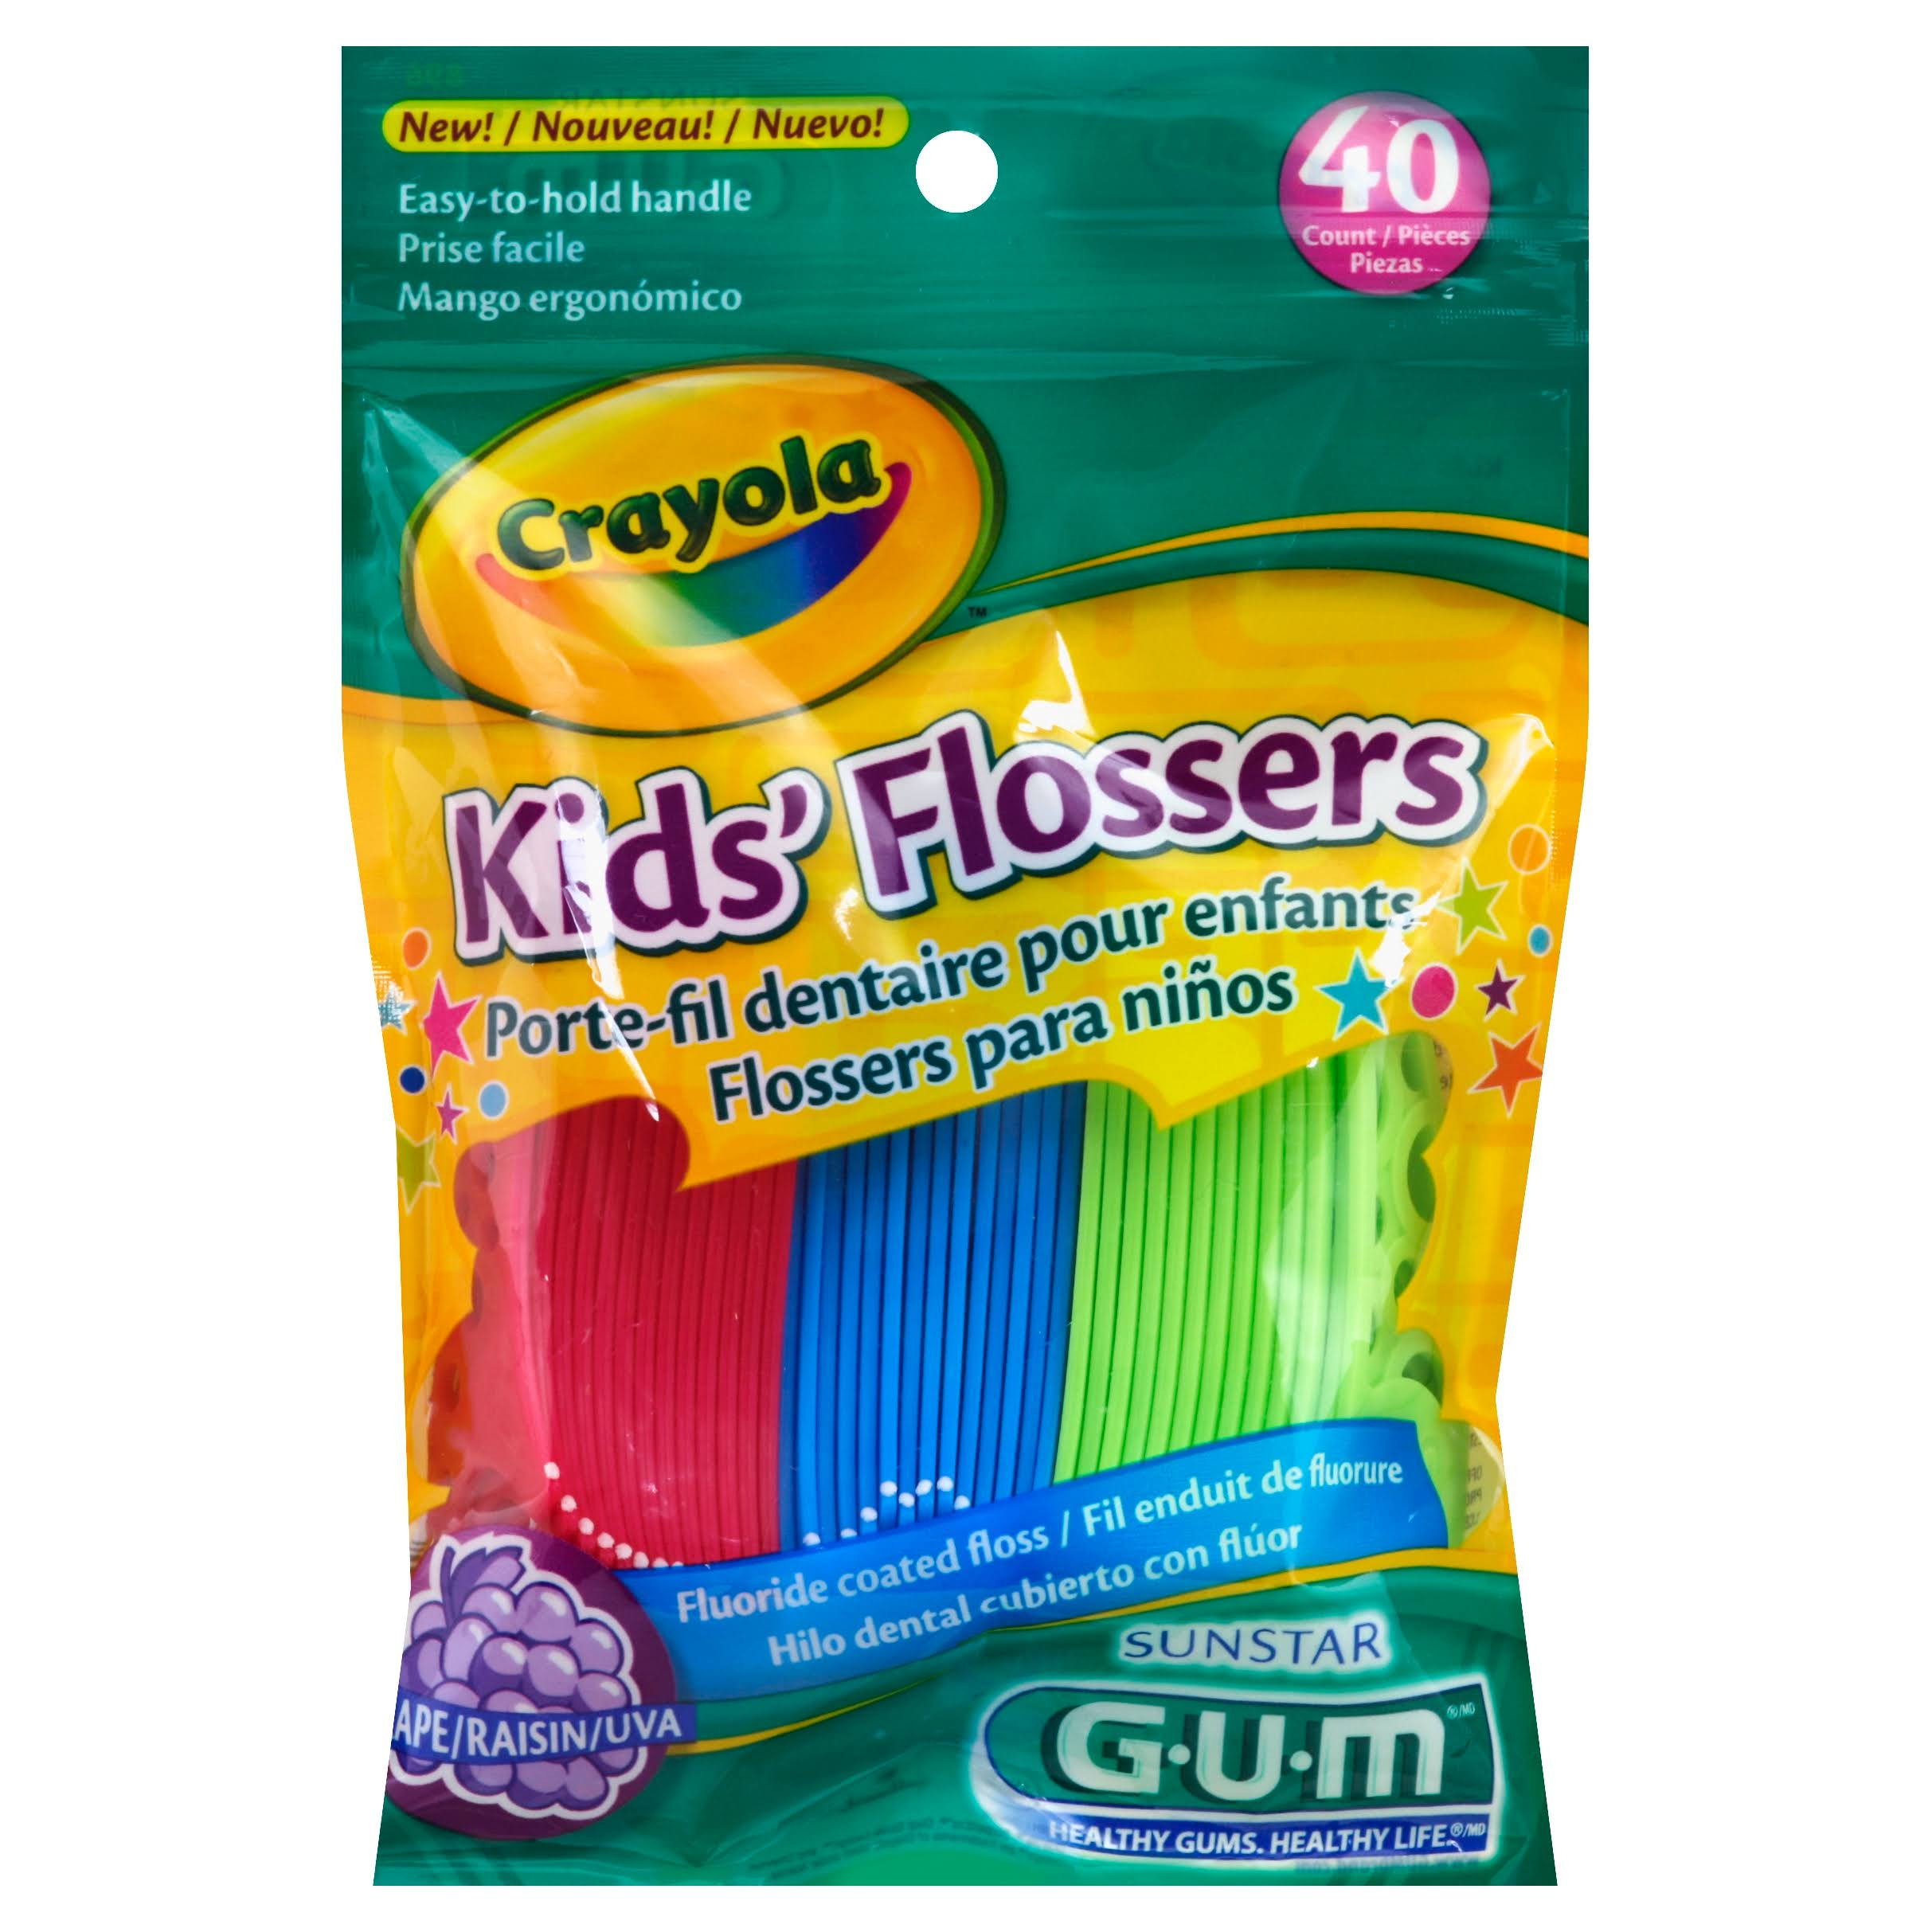 Butler Gum Crayola Dental Flossers For Kids - 40ct